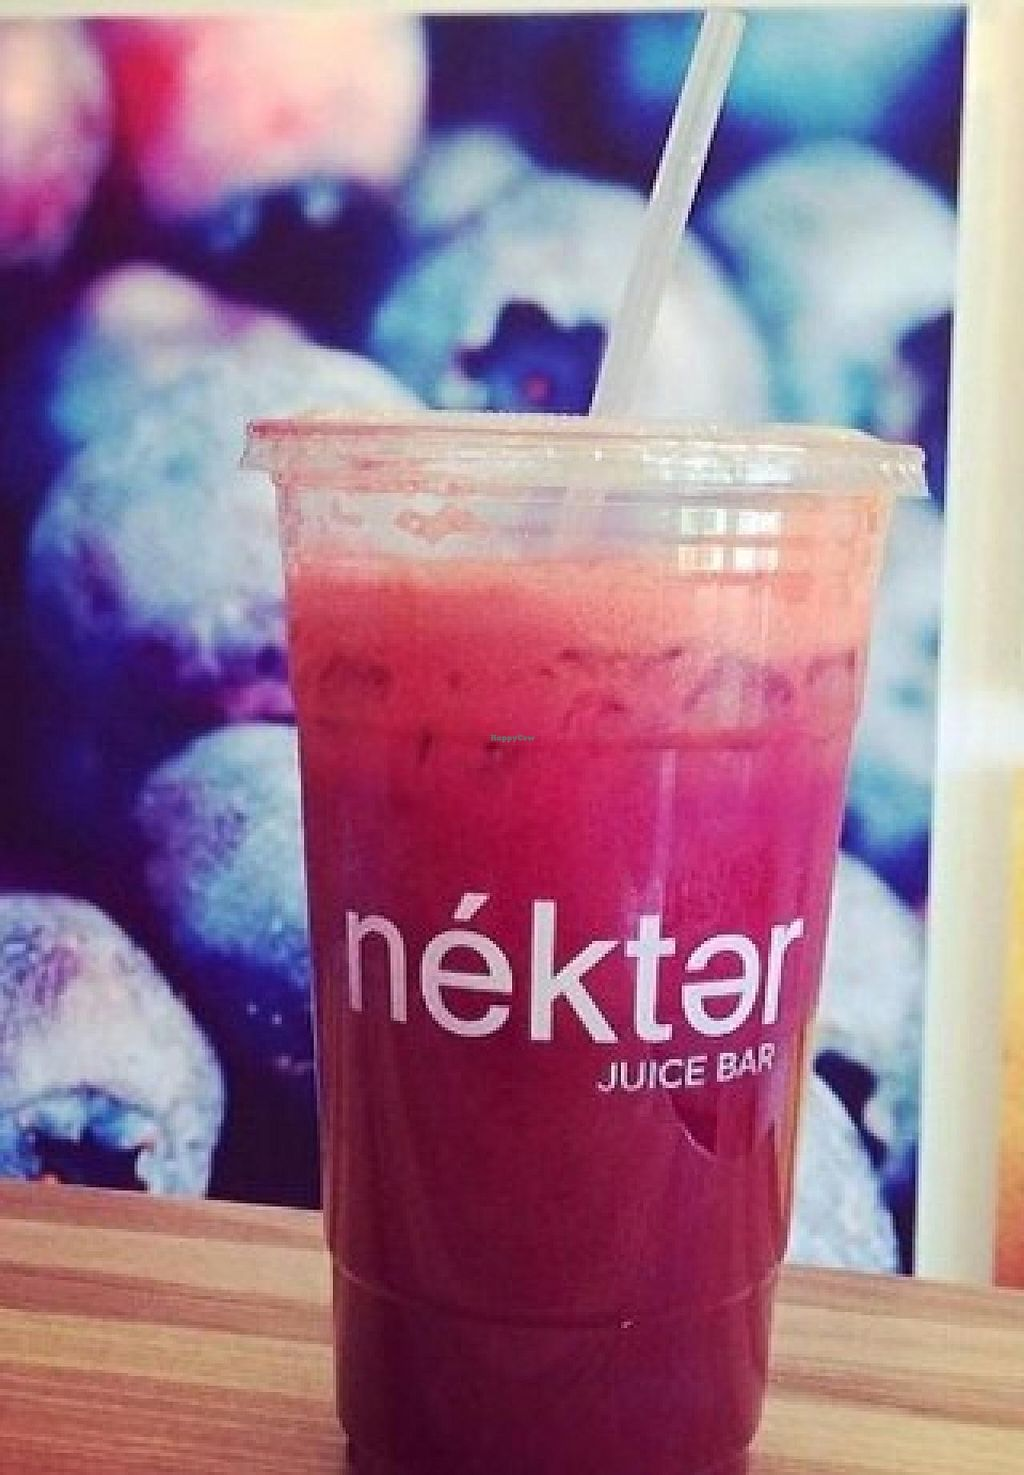 """Photo of Nekter Juice Bar  by <a href=""""/members/profile/community"""">community</a> <br/>juice <br/> November 1, 2014  - <a href='/contact/abuse/image/52721/84340'>Report</a>"""